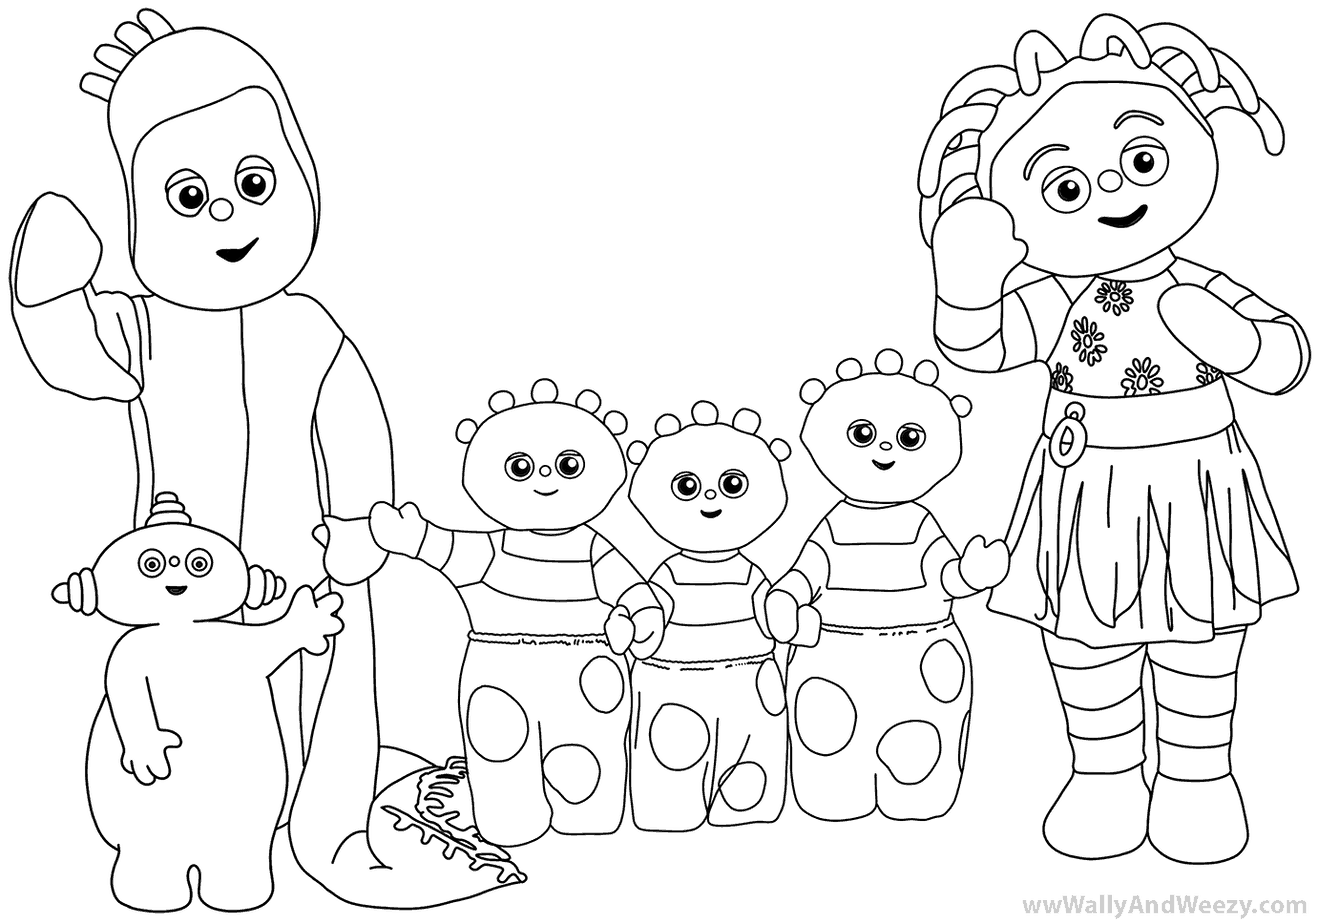 Coloring Pages Archives Wally And Weezy